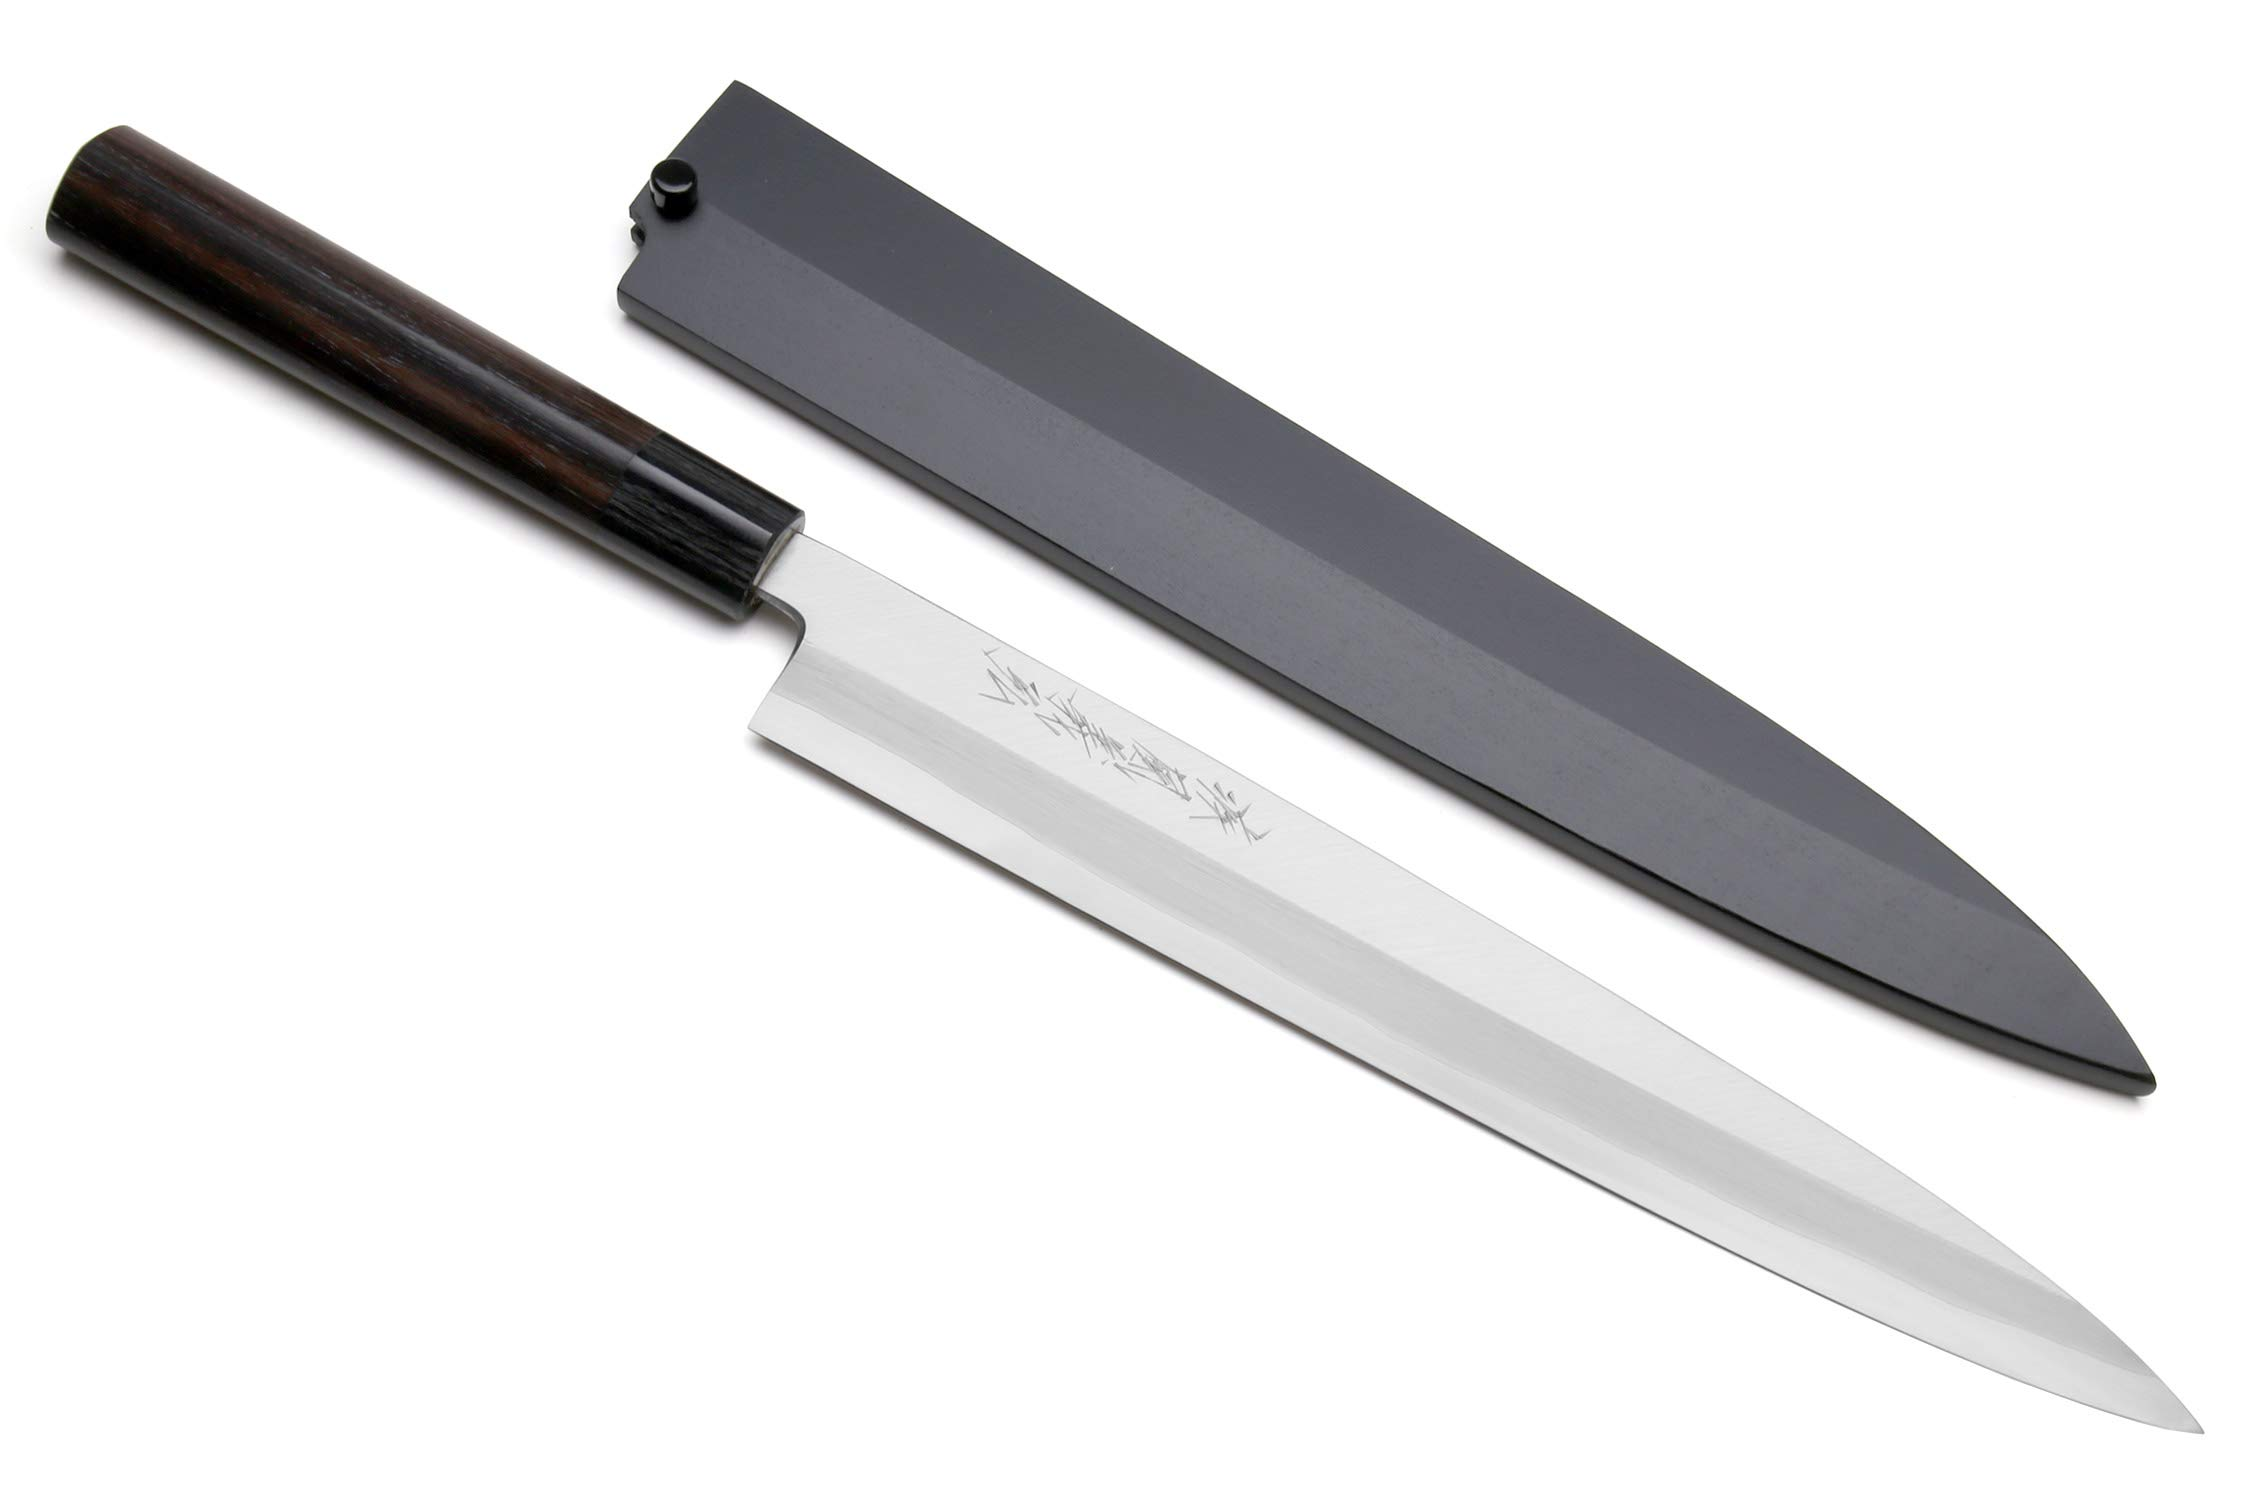 Yoshihiro Inox Stainless Steel Yanagi Sushi Sashimi Japanese Chef Knife Rosewood Handle with Nuri Saya Cover (11.8 IN)